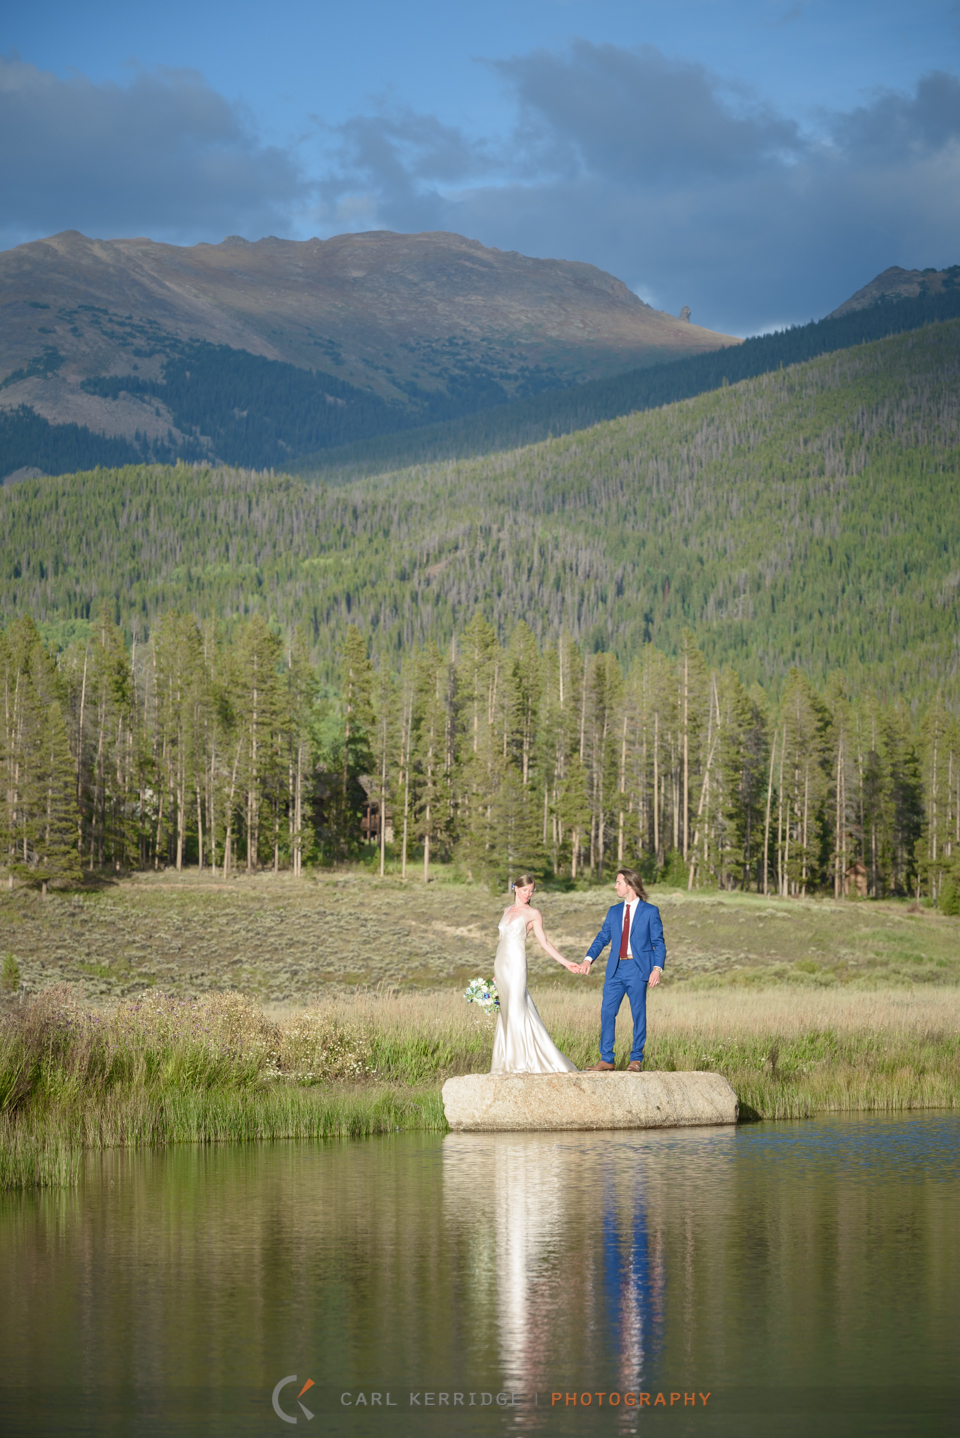 carl-kerridge-photography-wedding-devils-thumb-ranch-colorado-27